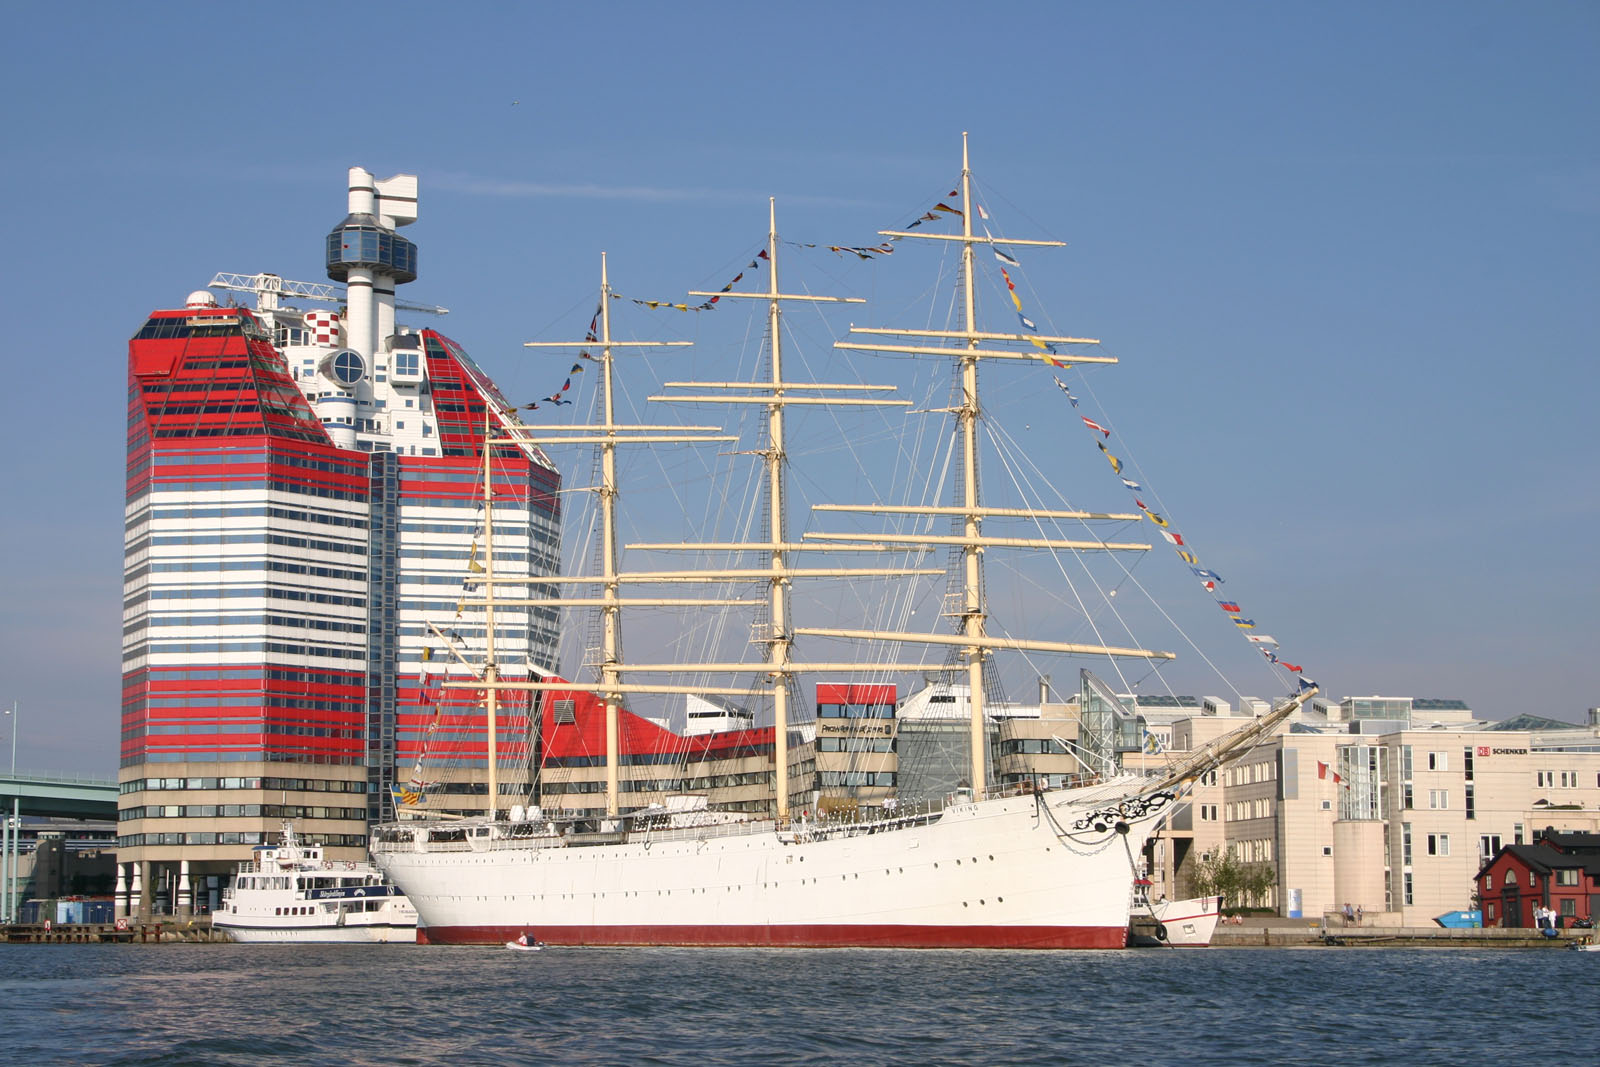 Sailing ship, now hotel..